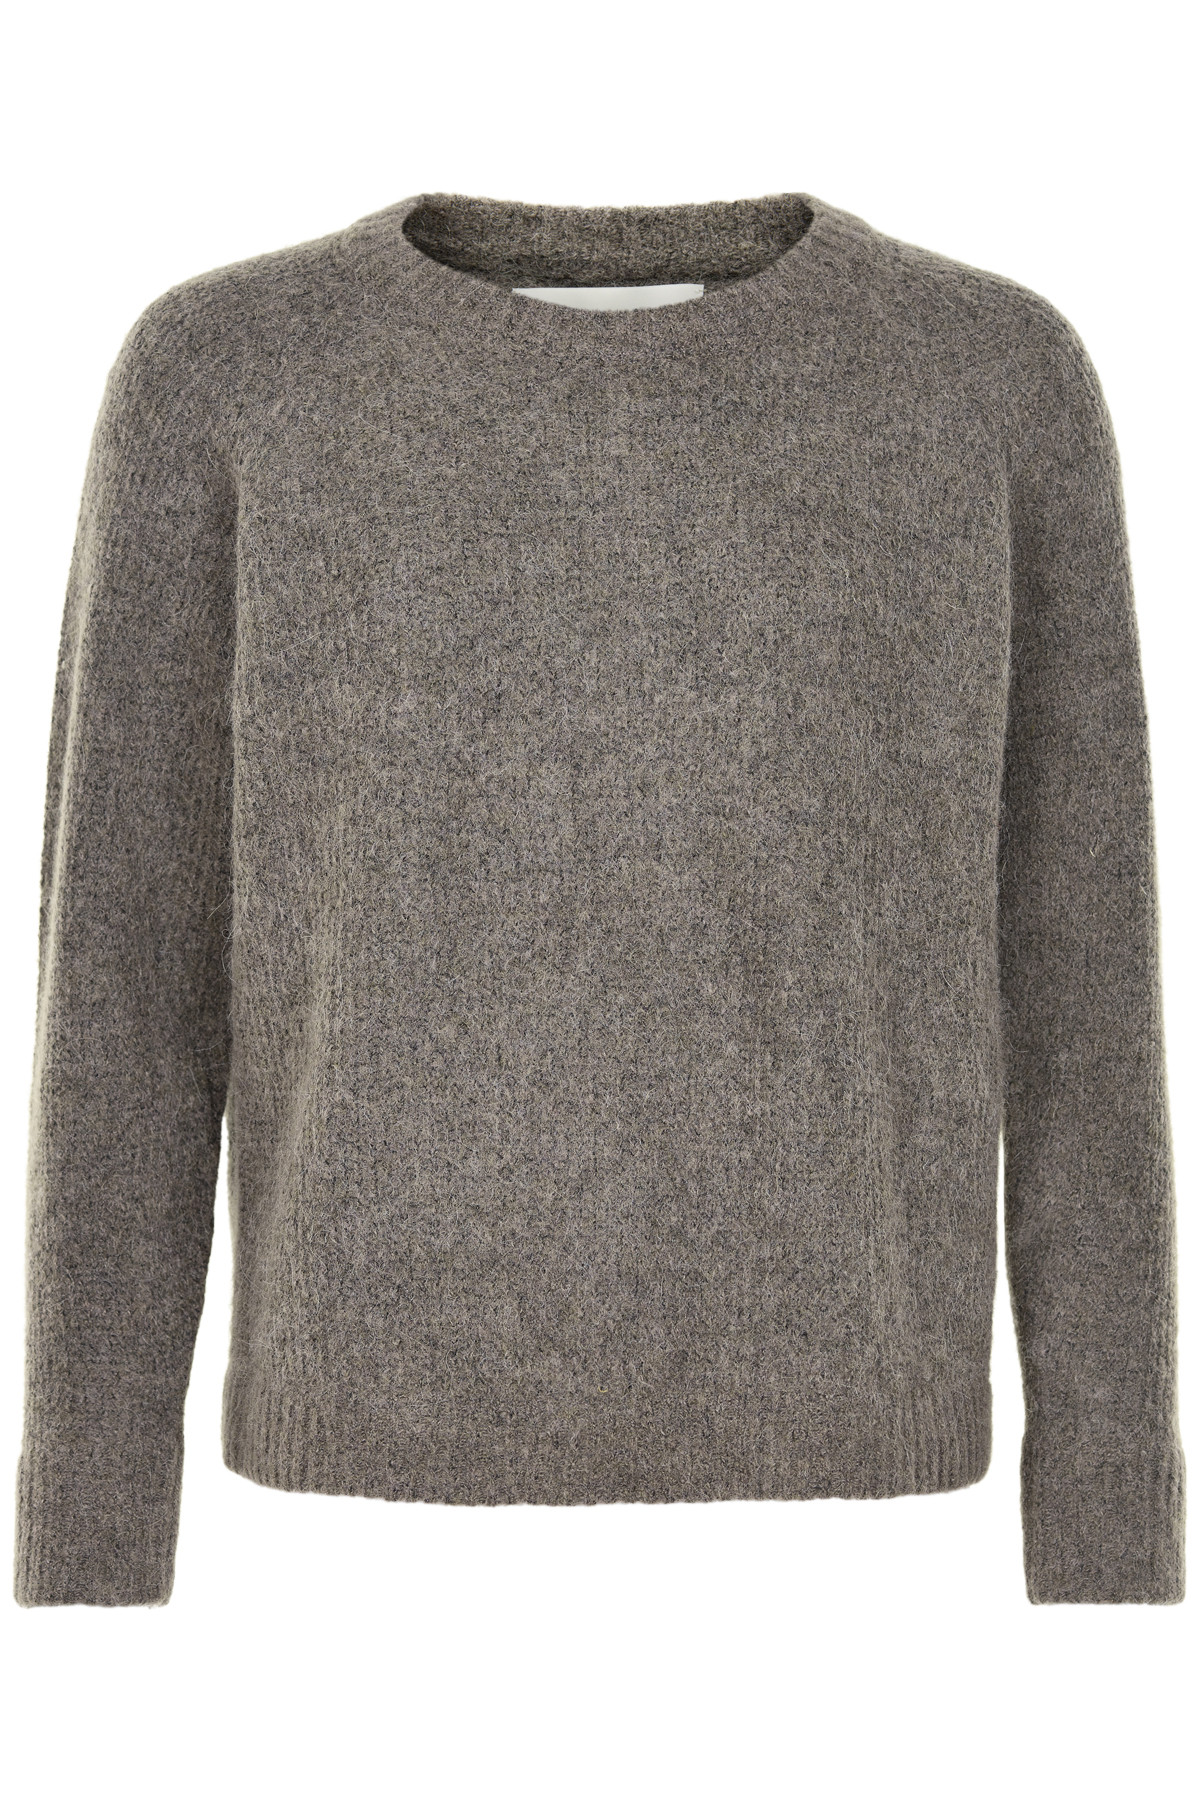 Image of   AND LESS ALBAMBINA SWEATER 5519211 W (Walnut, M)